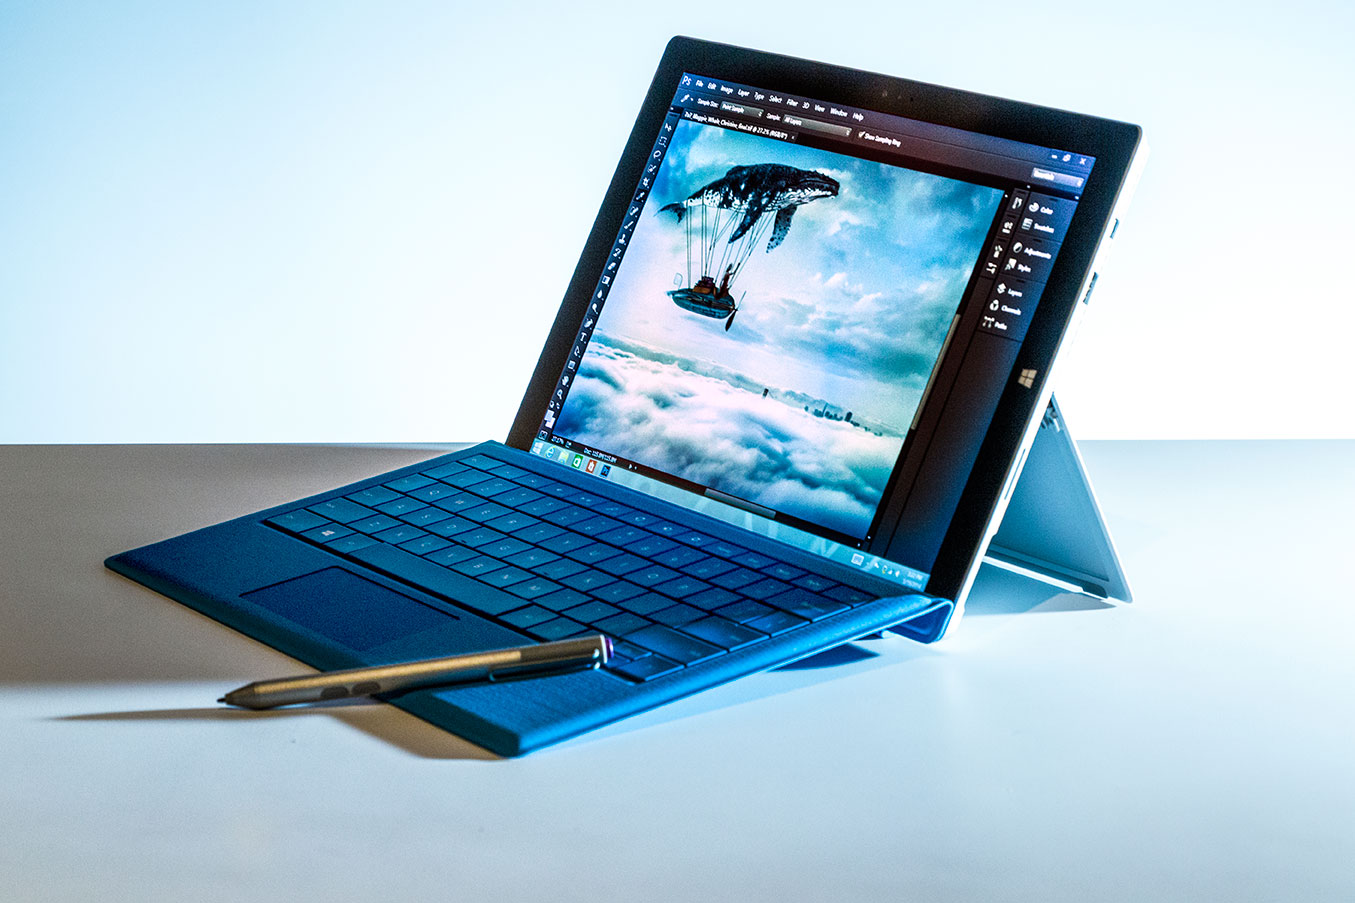 The Surface Pro 3 displaying a preview of the new touch friendly (and Wintab-free) Adobe Photoshop CC, due to be released next month